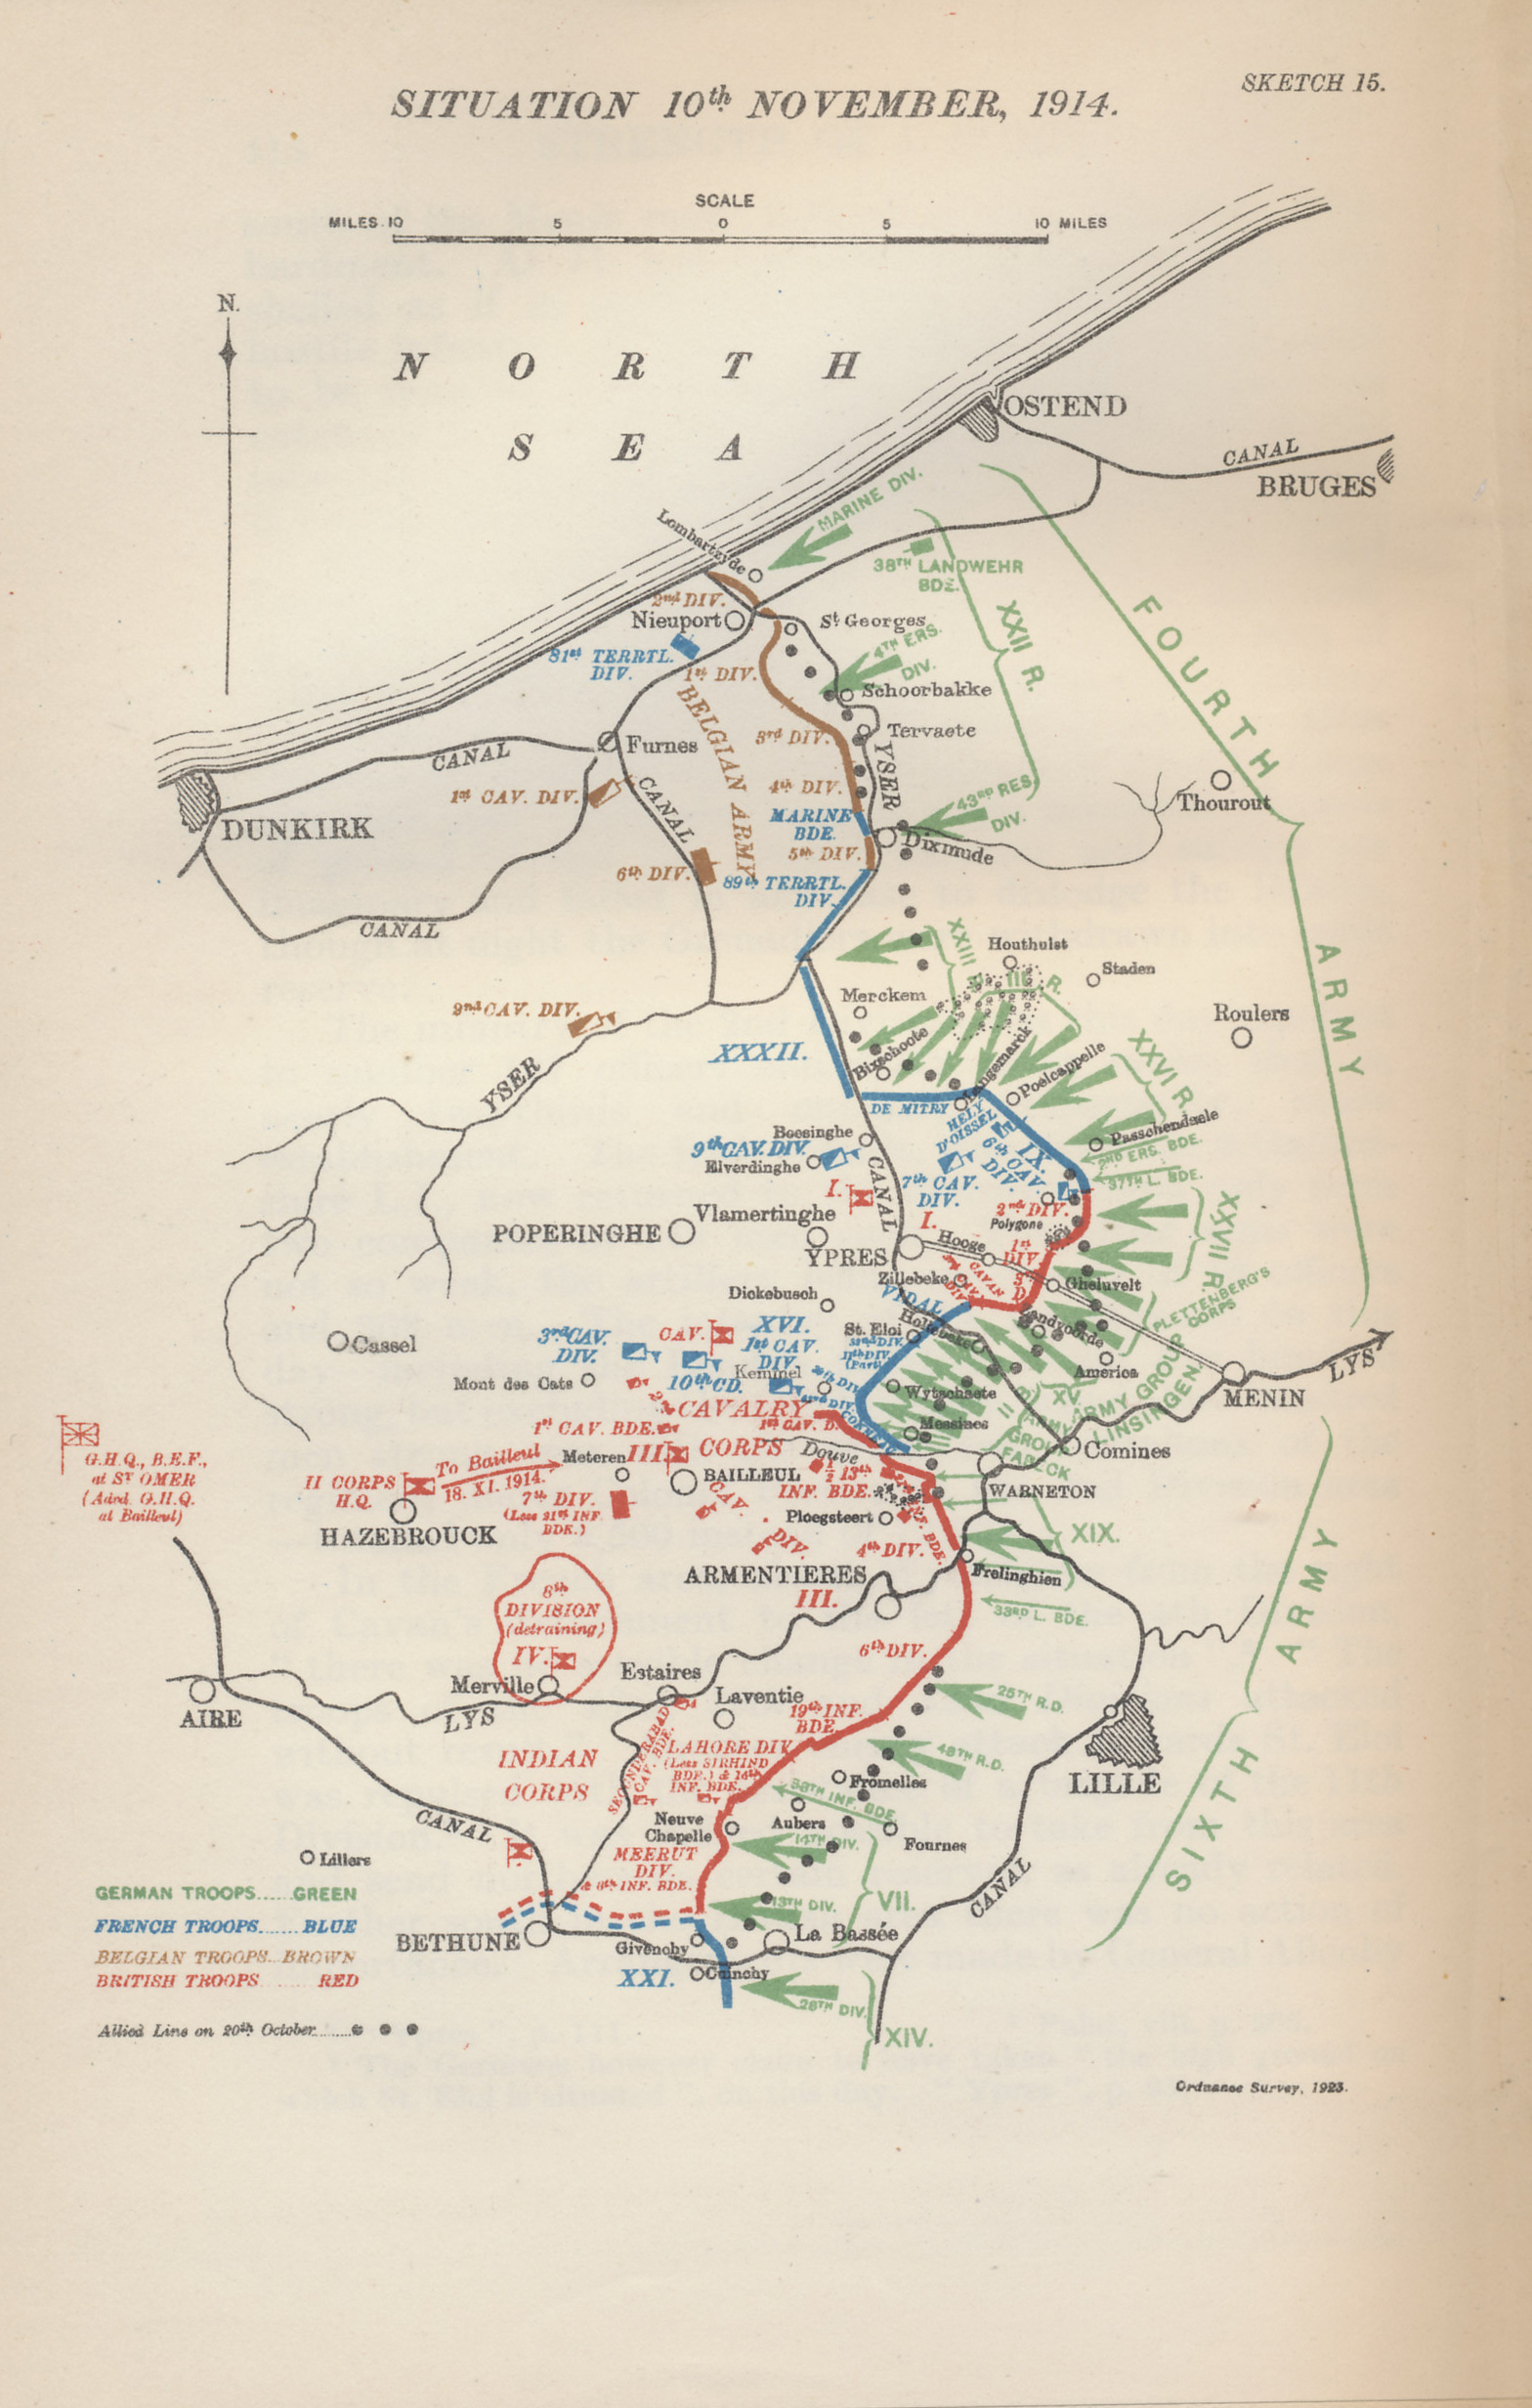 Map of the military situation in Flanders on November 10, 1914, the eve of the second major German assault on the Ypres salient. After bearing the brunt of the German assault in the latter half of October, the Belgians had inundated the farmland before them, leading the Germans to turn their efforts on the British at Ypres. After the first great German assault on October 31, the French reinforced the British line. On November 11, the Allies were unaware of how extensive the forces facing them were. Map  by Major A. F. Becke R.A. (Retired) from Military Operations France and Belgium, 1914, Vol. II, October and November, by J. E. Edmonds.